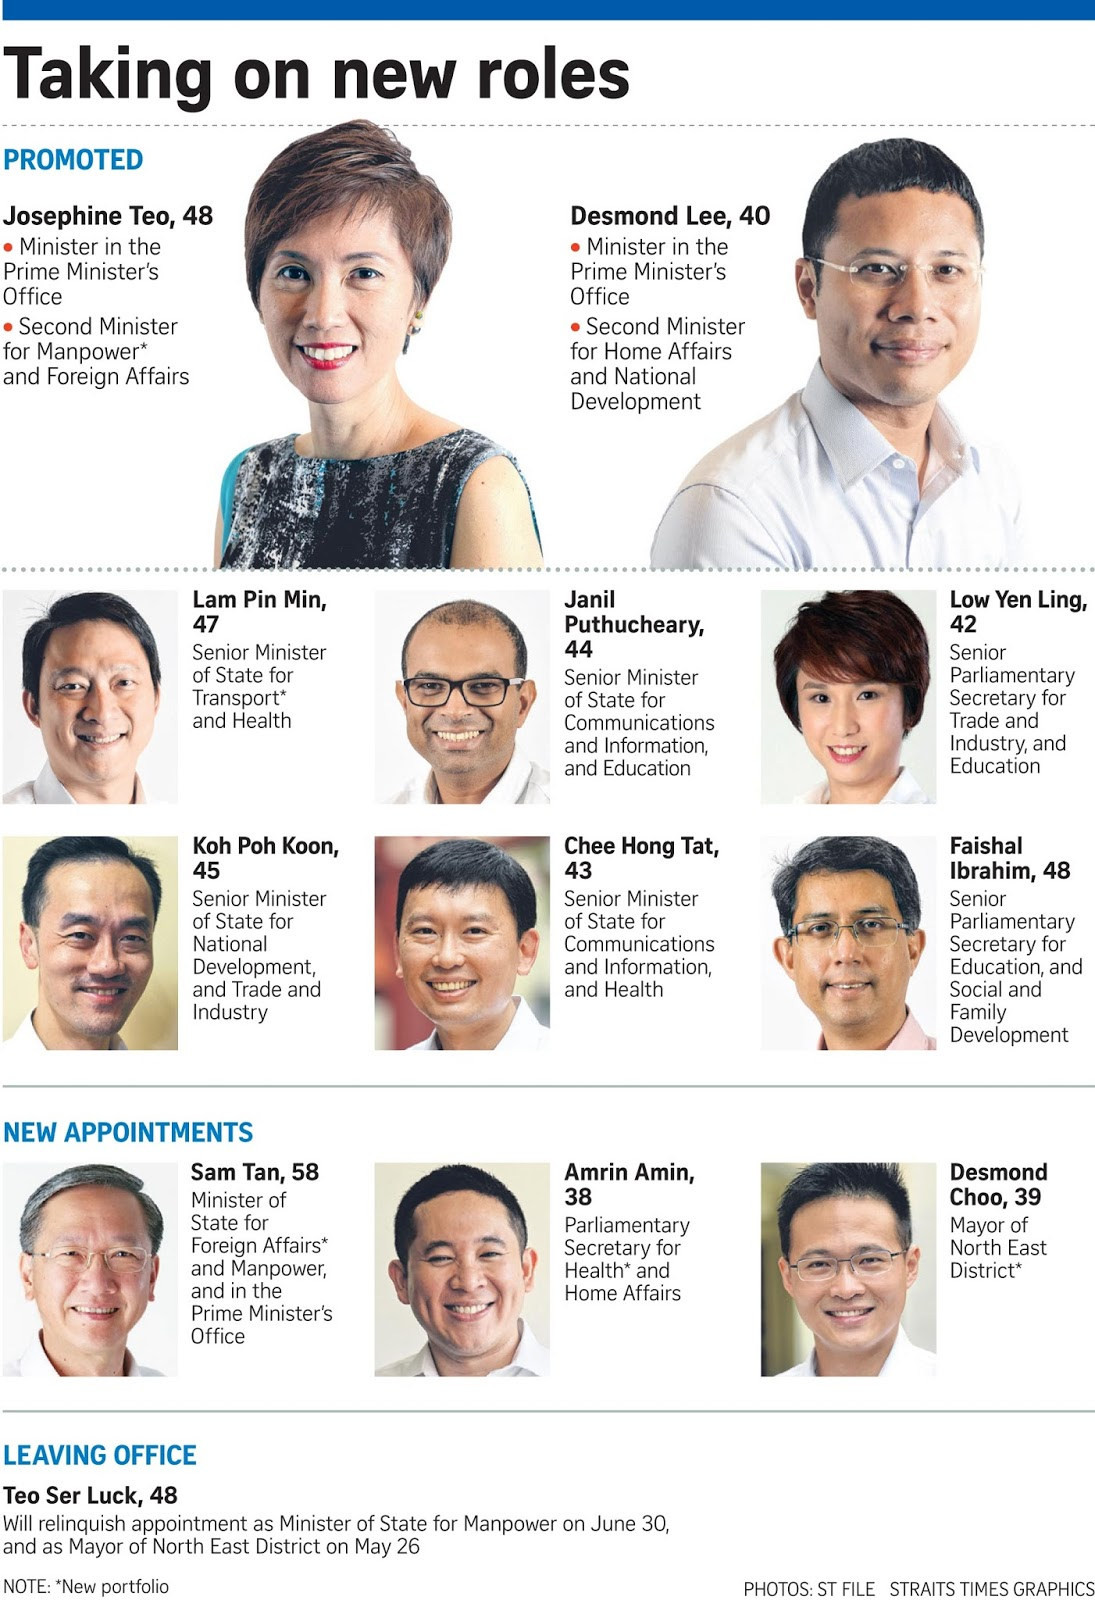 Mrs Josephine Teo And Mr Desmond Lee Will Be Promoted To Full Ministers In  The Latest Round Of Cabinet Changes, Which Observers Say Will Consolidate  The ...